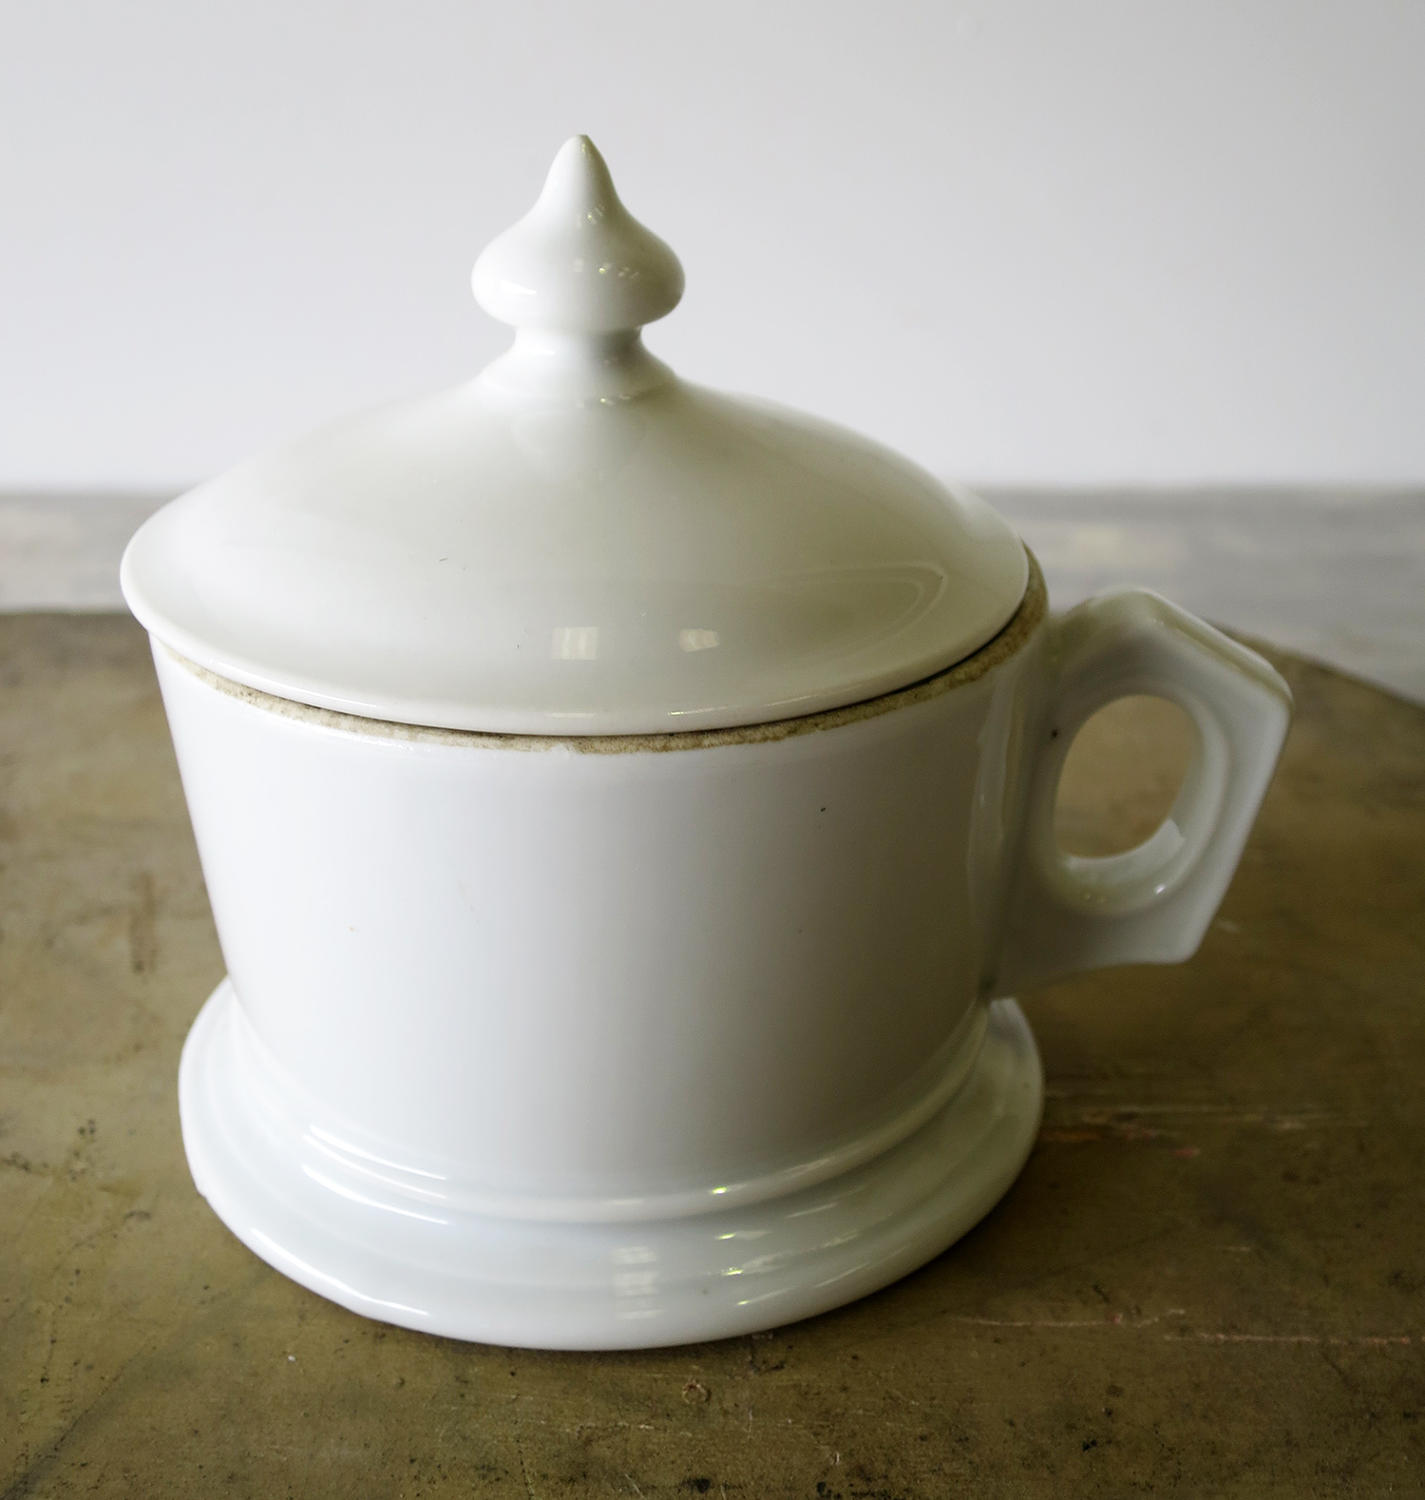 19th century White French Lidded Mug